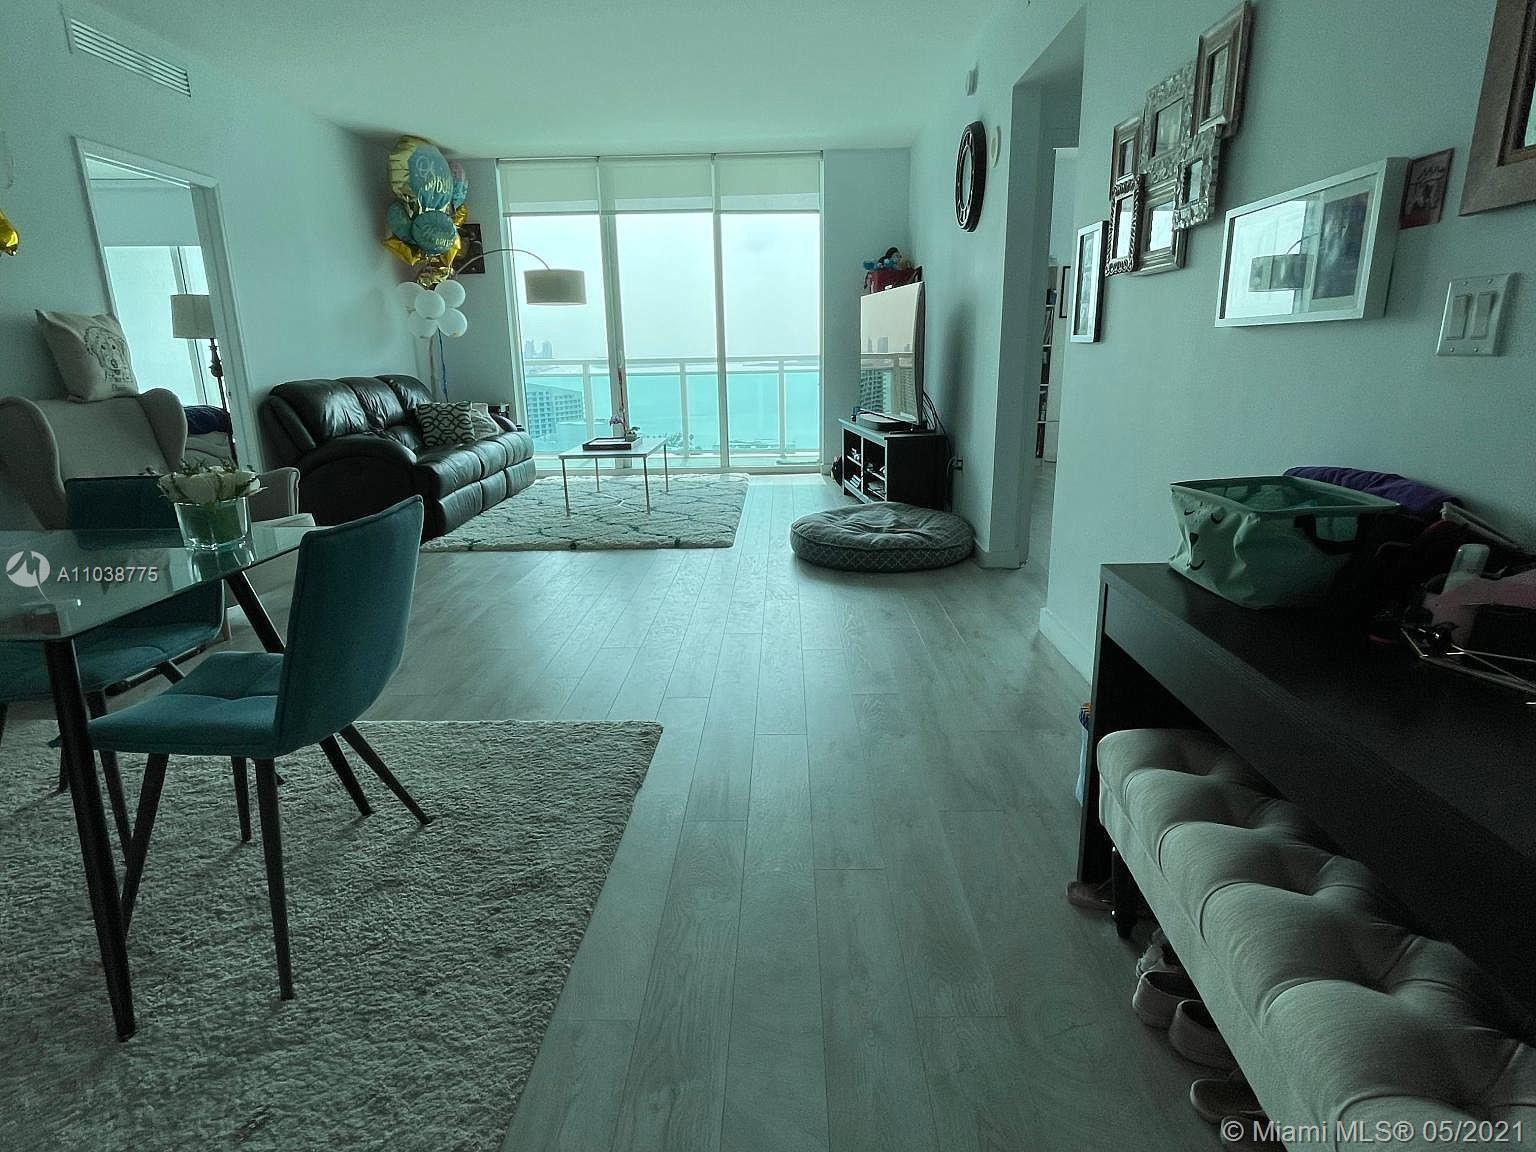 The Plaza on Brickell 2 #2606 - 951 Brickell Ave #2606, Miami, FL 33131